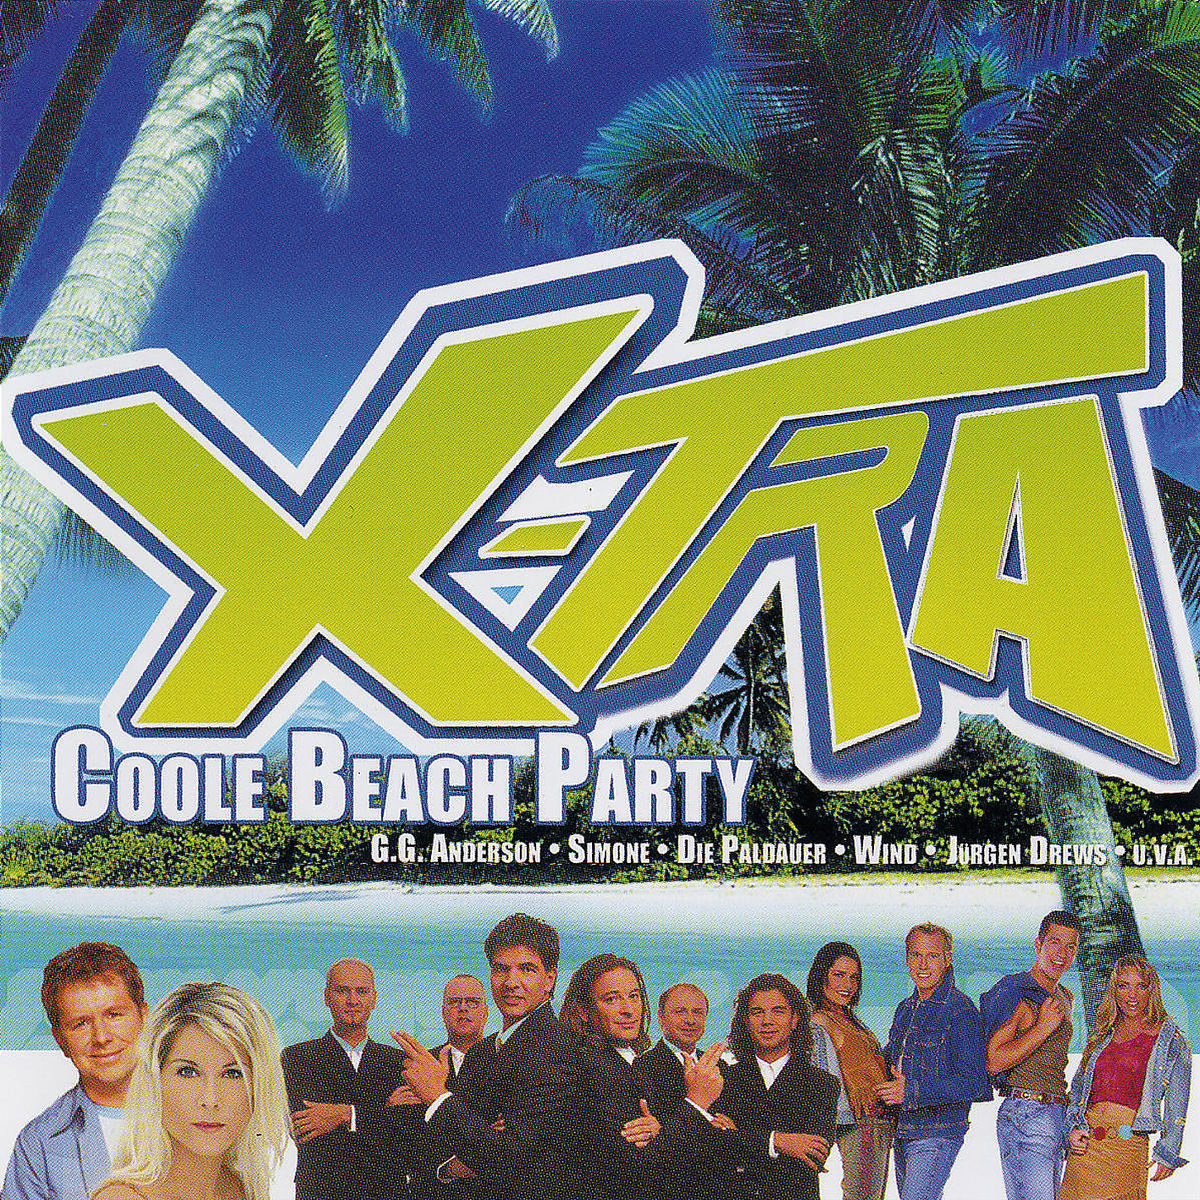 X-tra Coole Beach Party - V/A - Musik -  - 0044003845527 - 10/6-2003